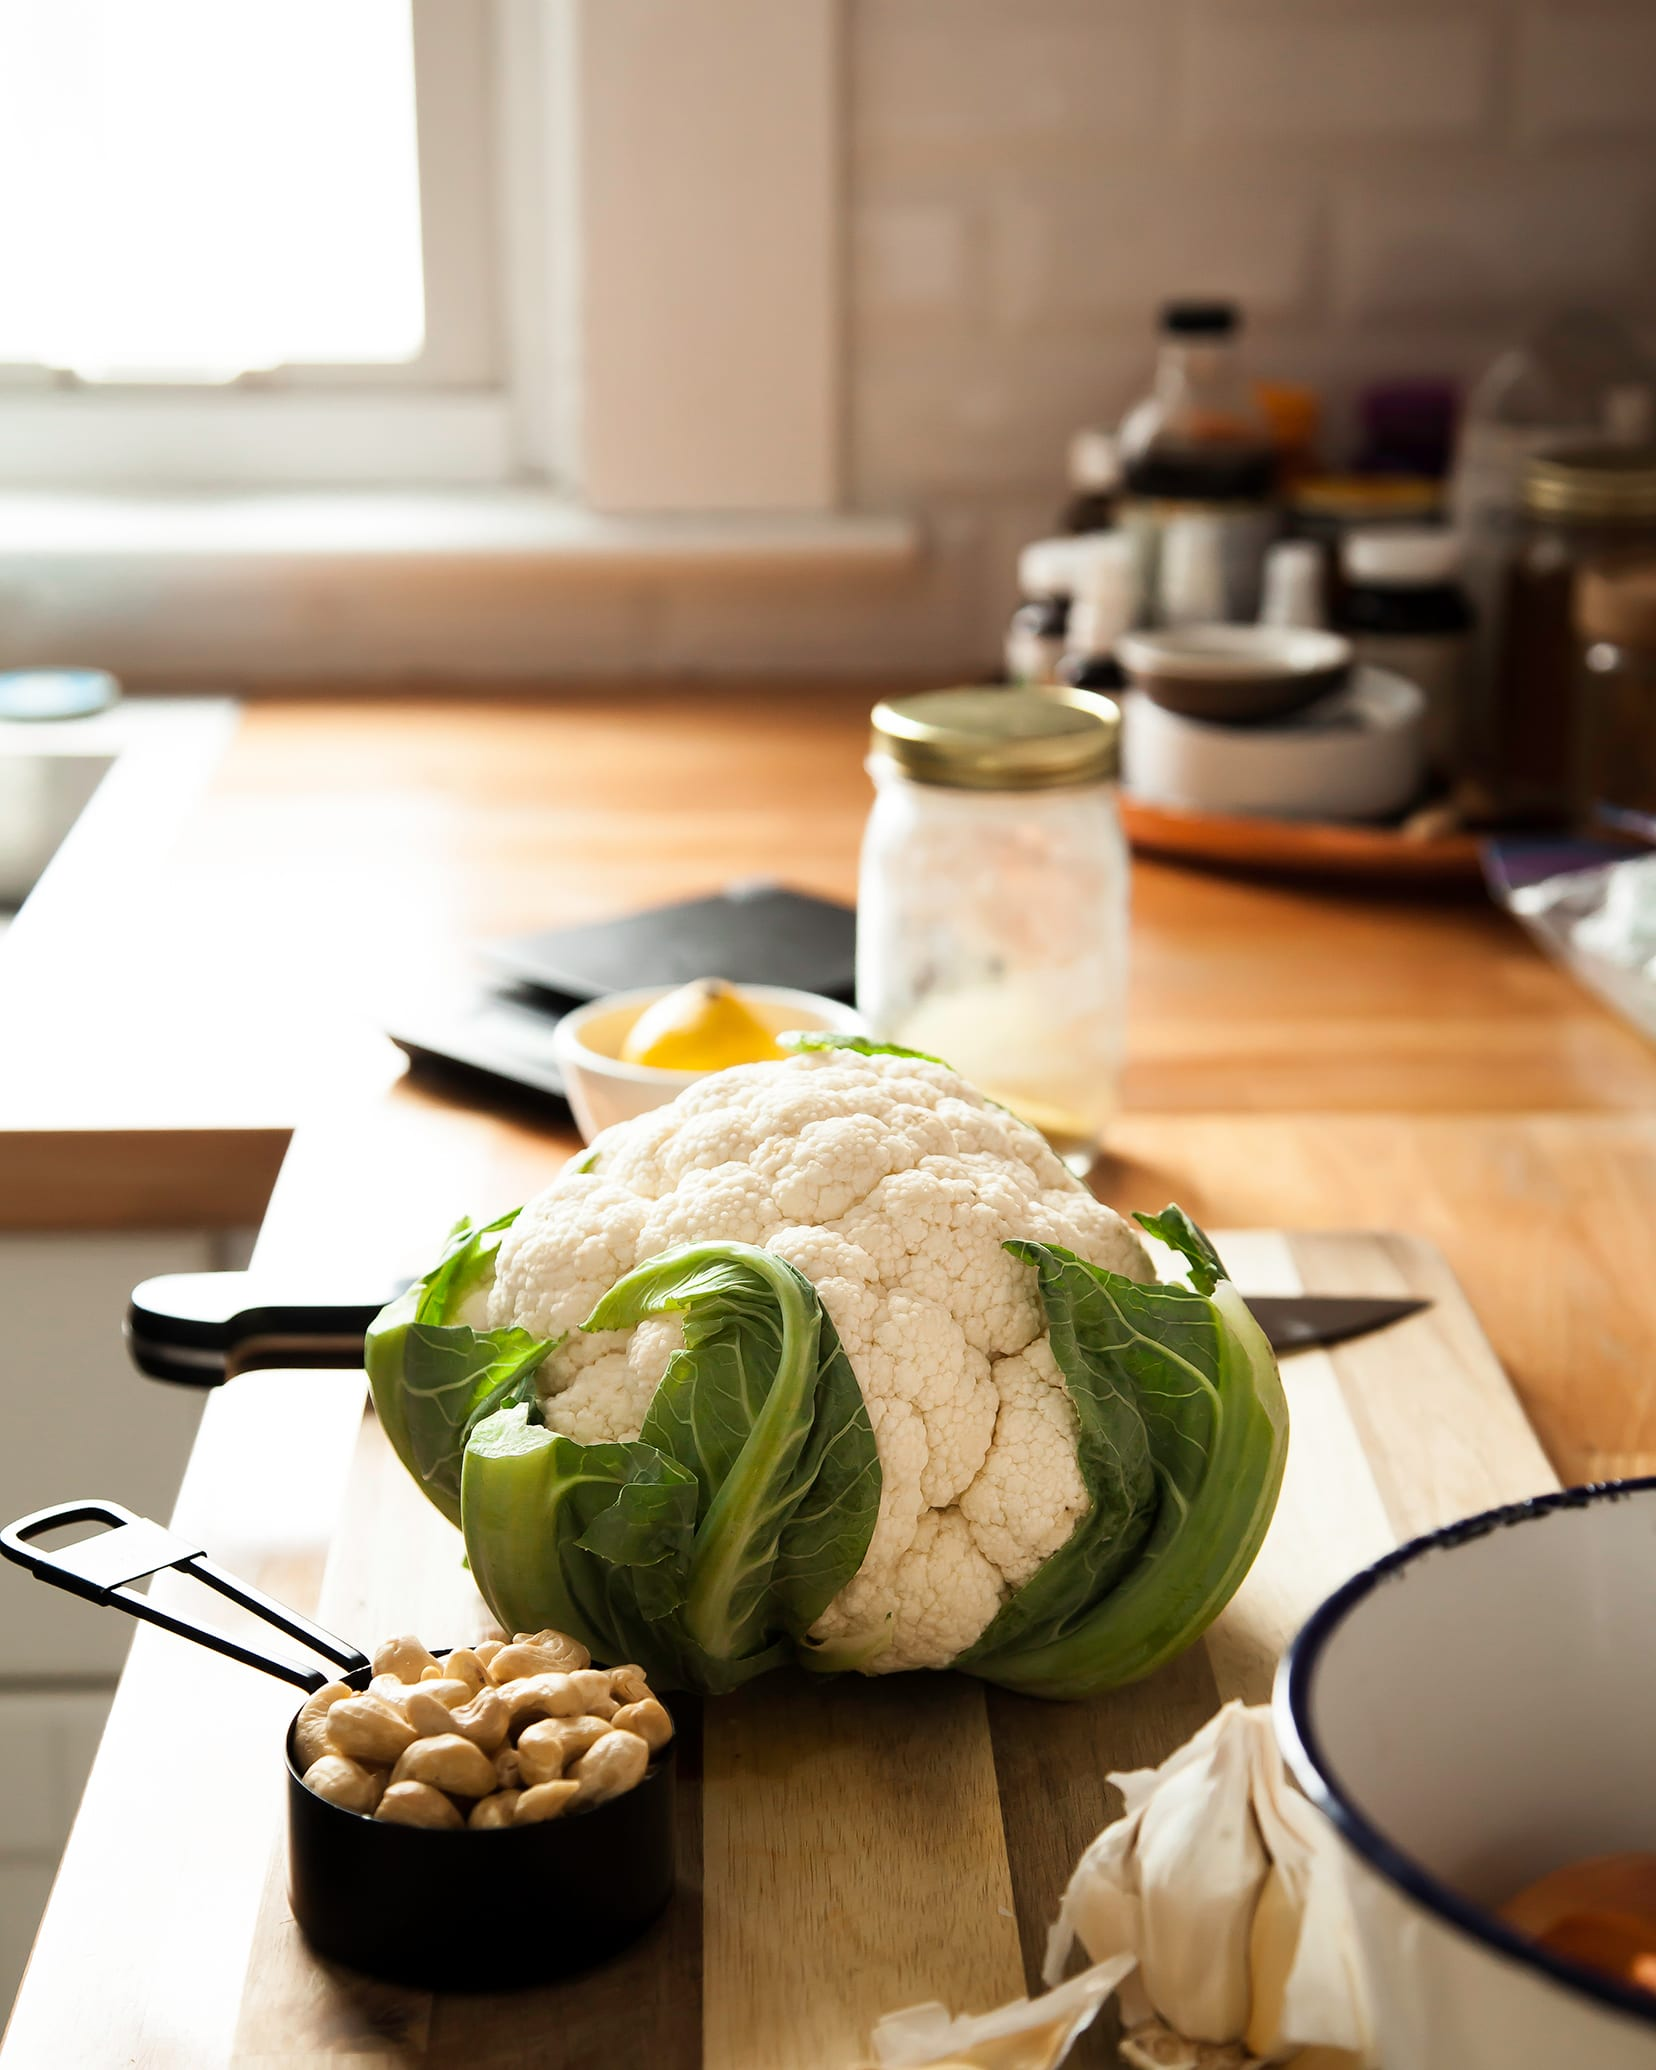 Image shows a head of cauliflower on top of a cutting board in a kitchen scene.